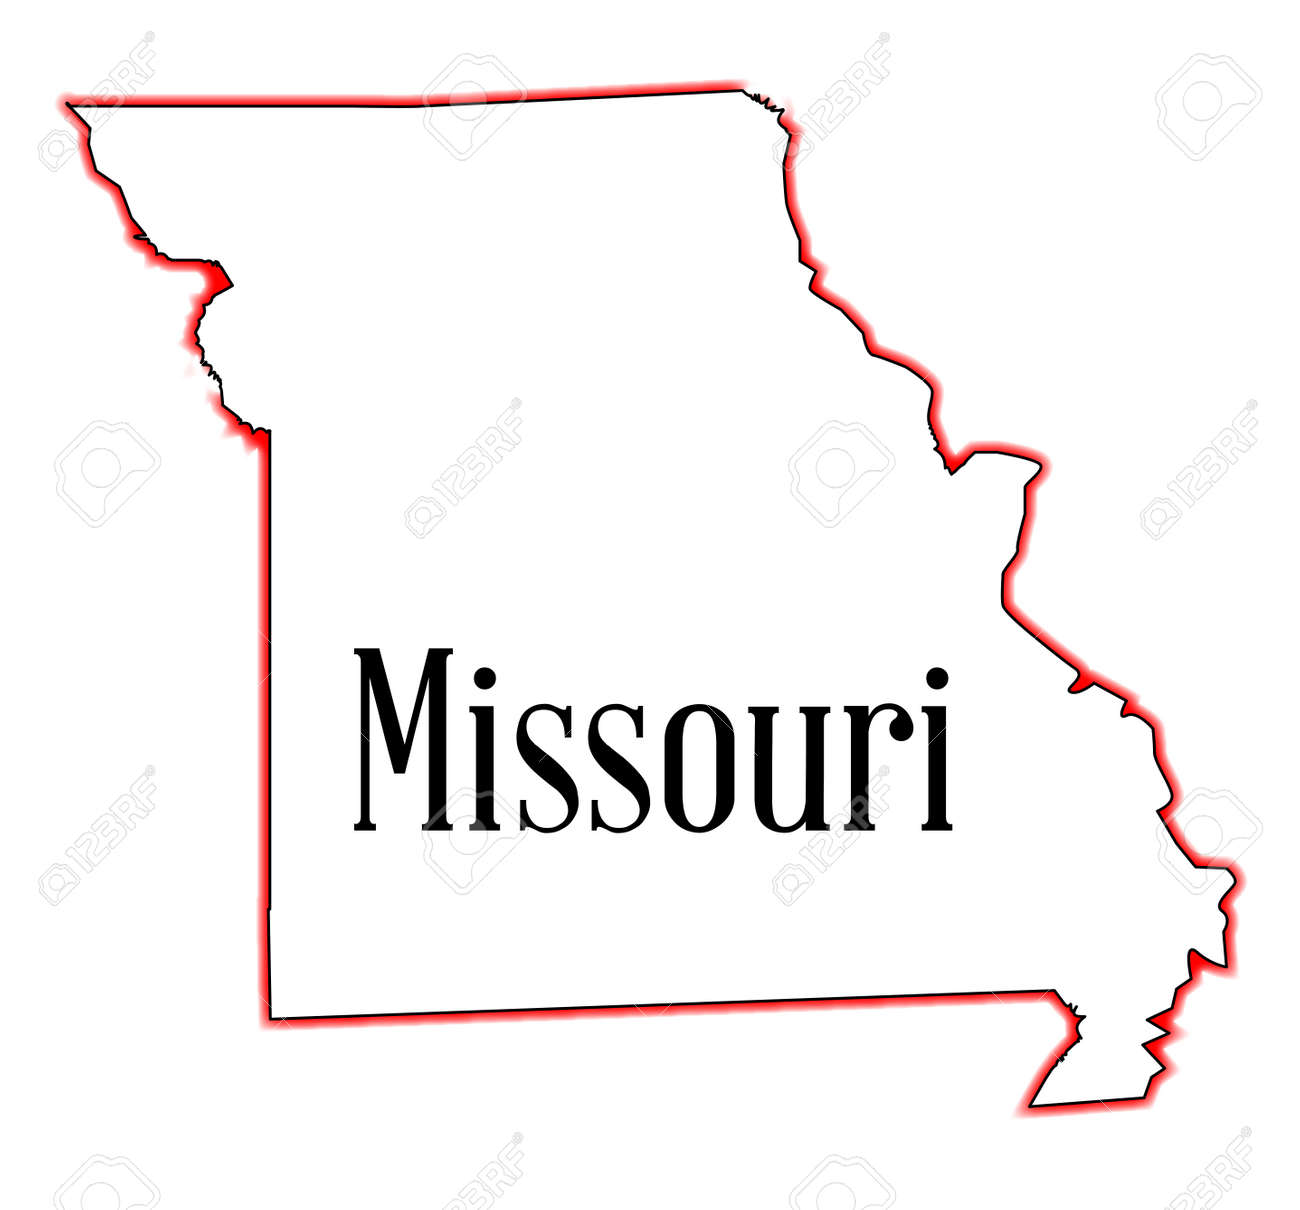 Outline Map Of The State Of Missouri Royalty Free Cliparts - Map of state of missouri